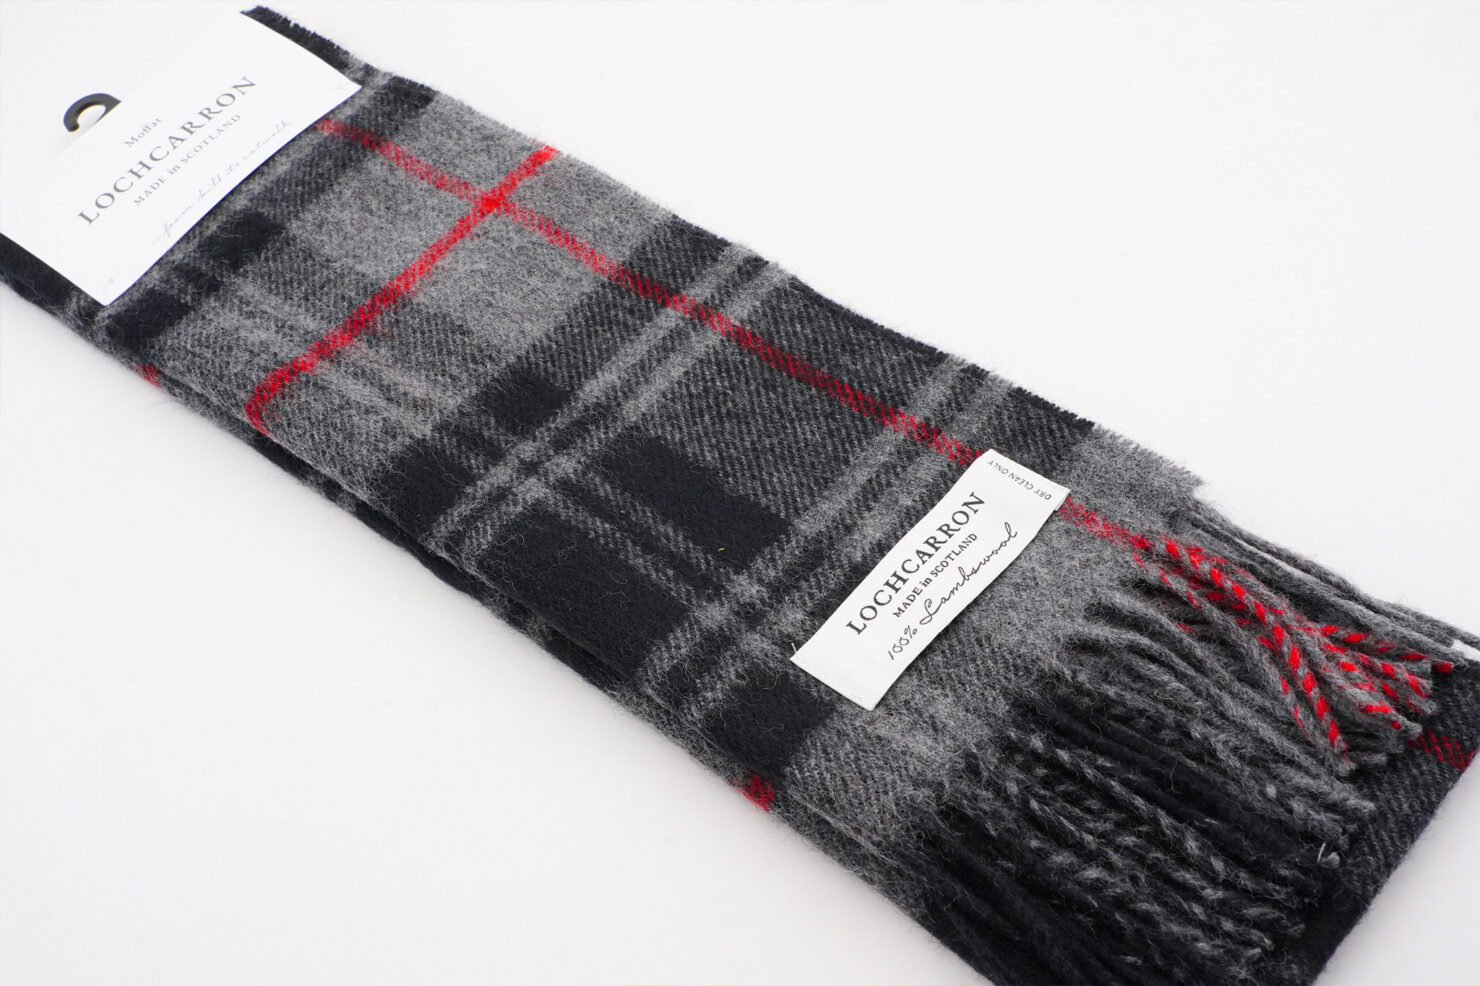 BRUSHWOOL LONG MOFFAT SCARF - LOCHCARRON OF SCOTLAND